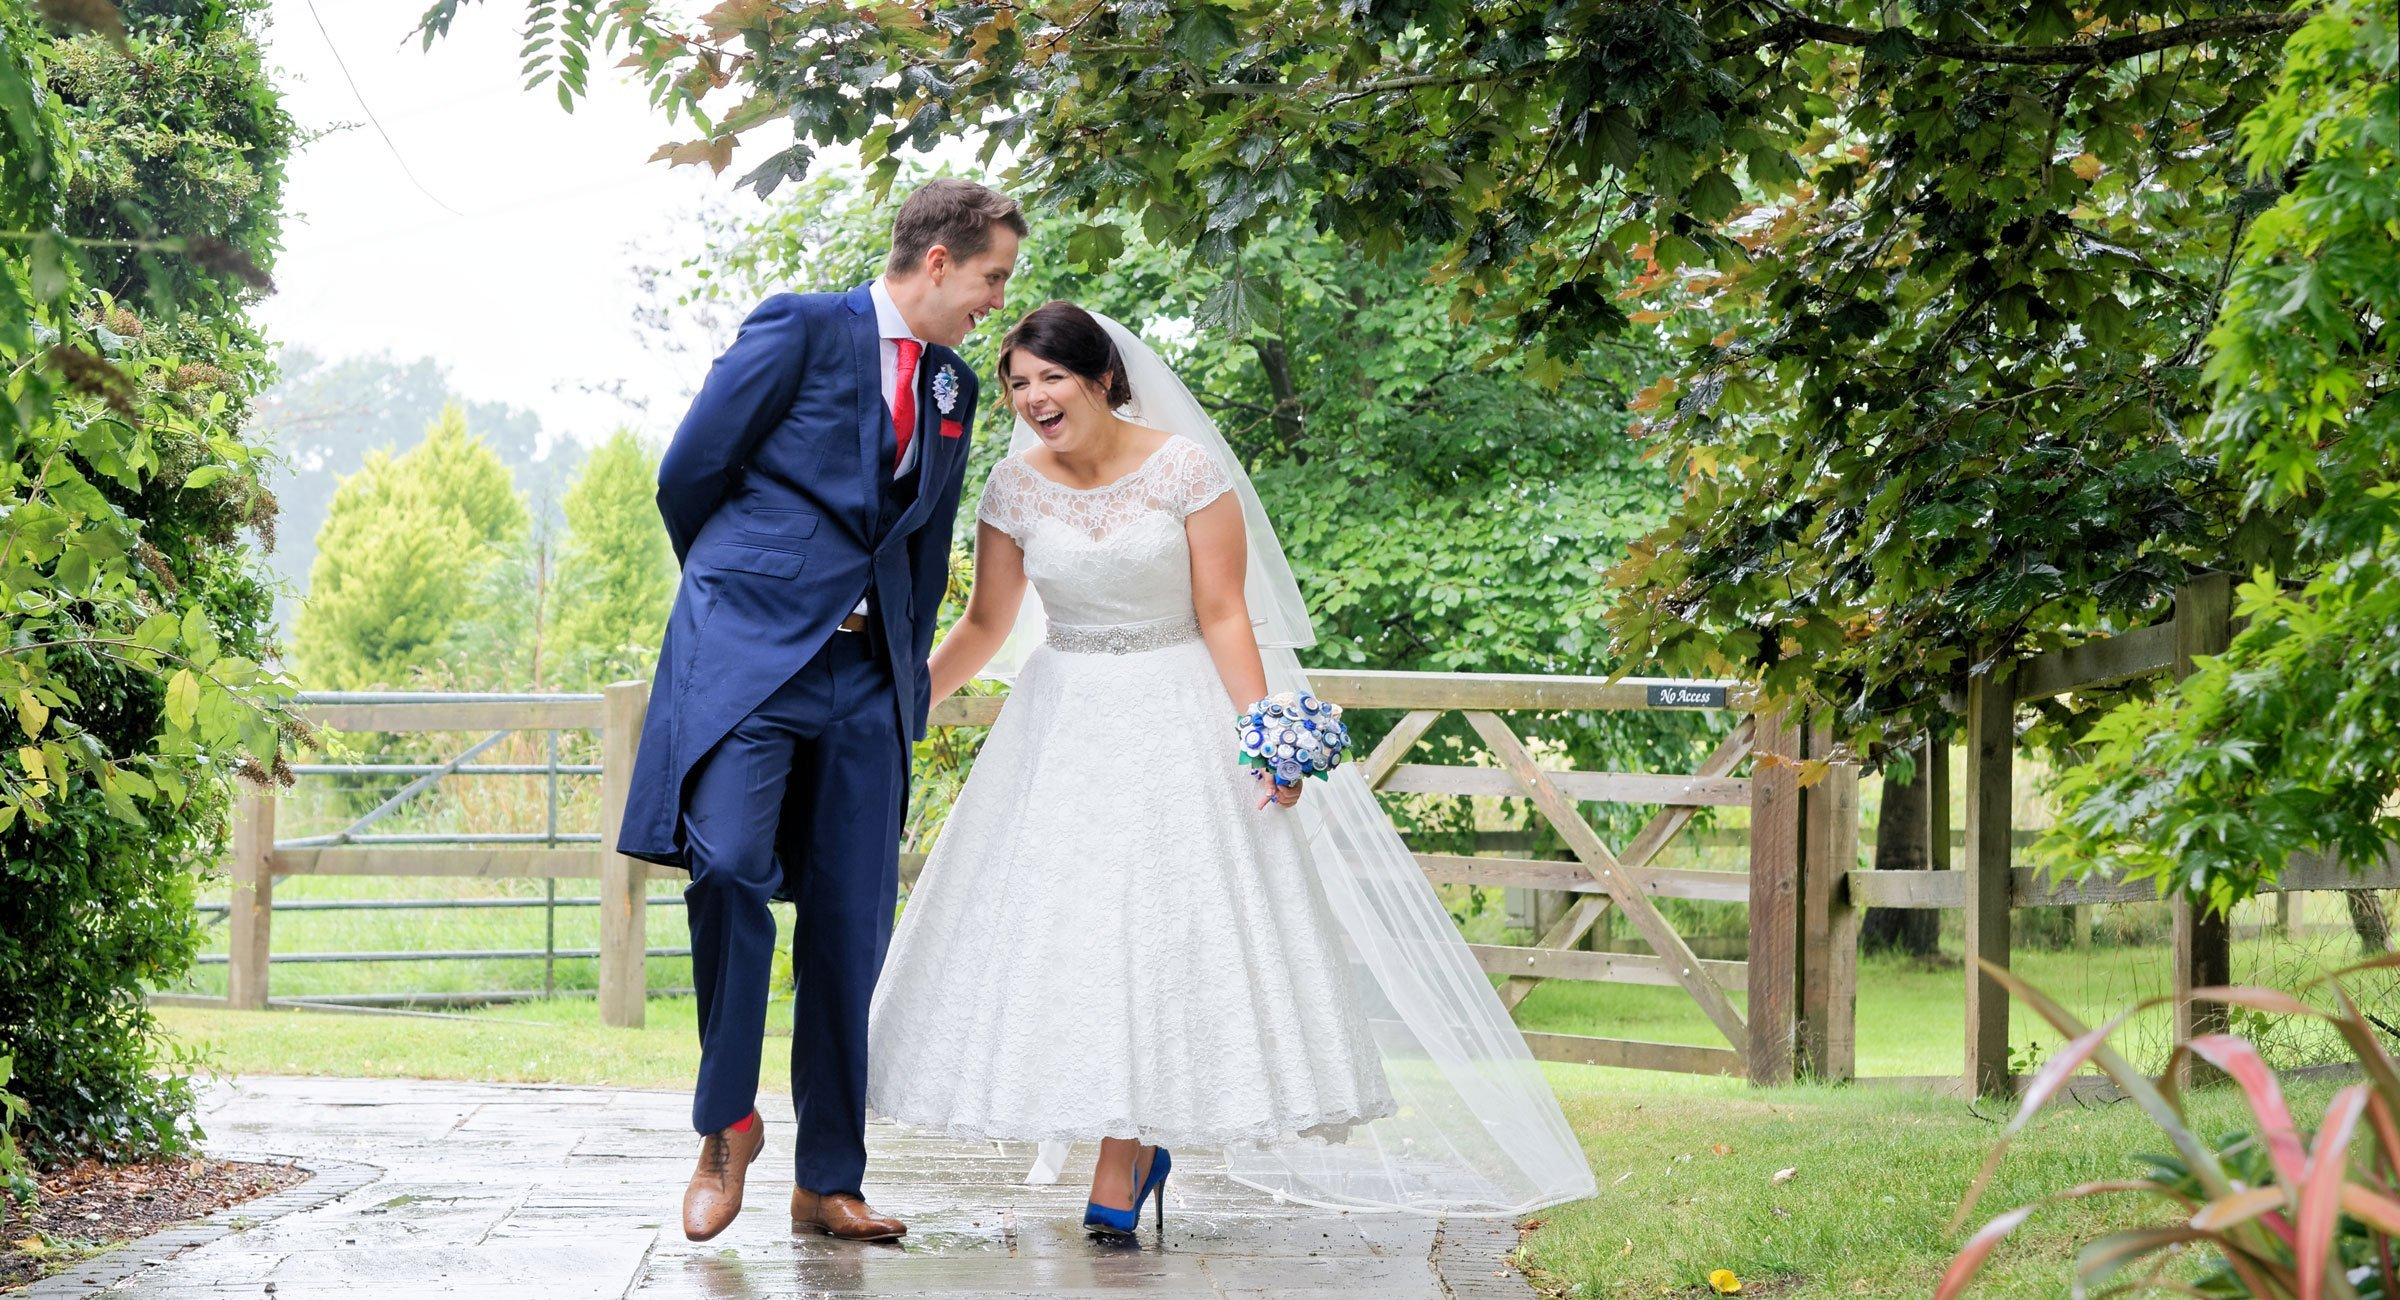 Wedding photography in Hampshire by Hampshire wedding photographers ASRPHOTO Southampton